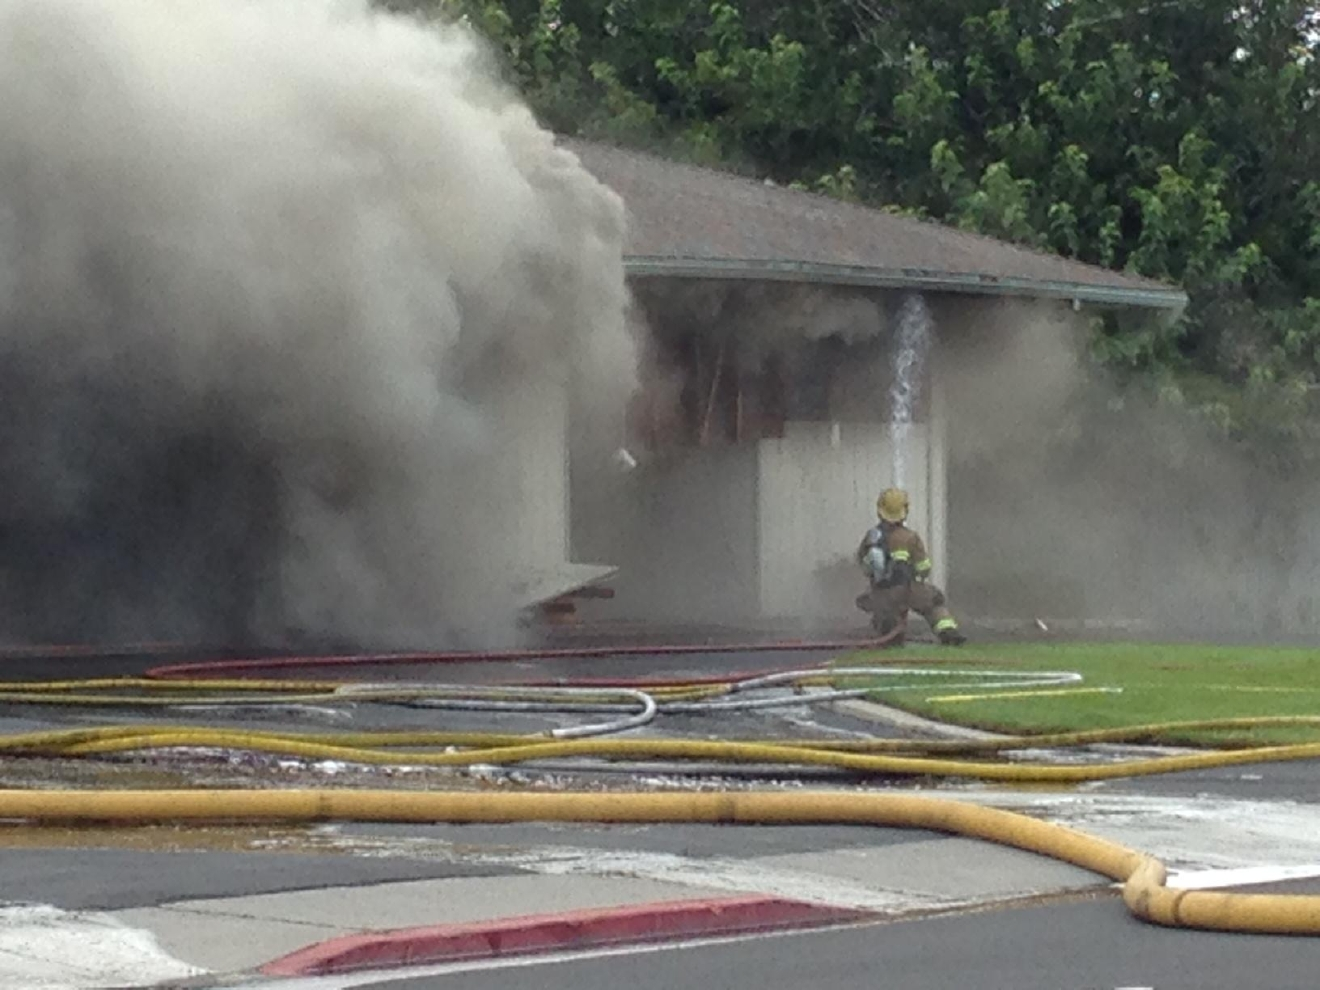 Sparks firefighters battle a blaze at Walton's Funeral Home on Friday, Sept. 23, 2016 (Sinclair Broadcast Group)